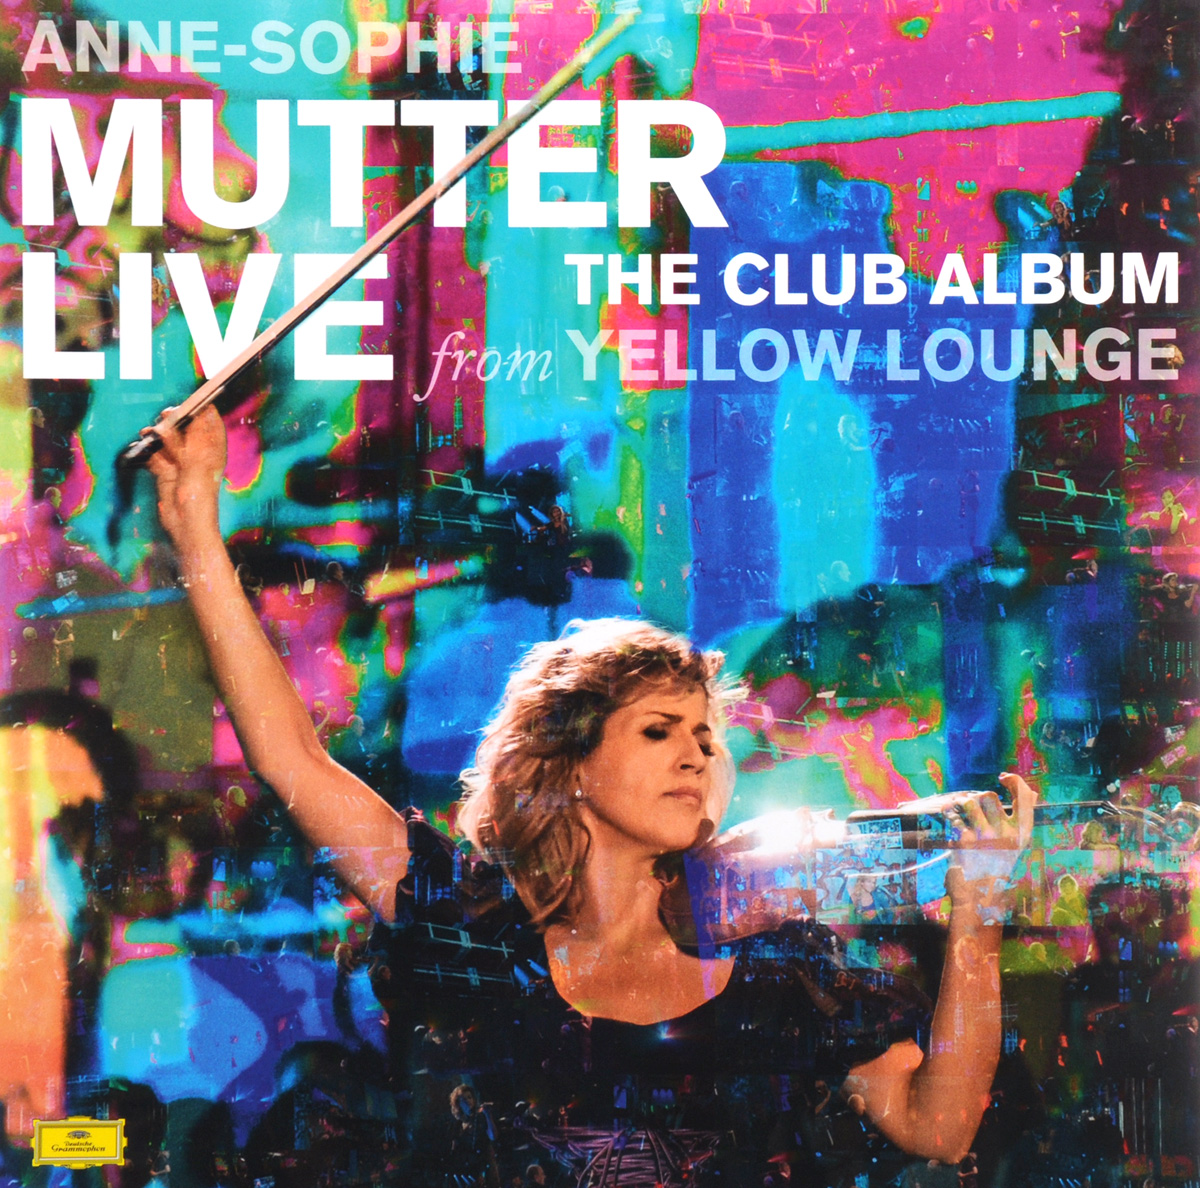 Анна-Софи Муттер,Noa Wildschut,Ламберт Оркис Anne-Sophie Mutter. Live From Yellow Lounge (2 LP) анна софи муттер ламберт оркис anne sophie mutter lambert orkis beethoven die violinsonaten 4 cd